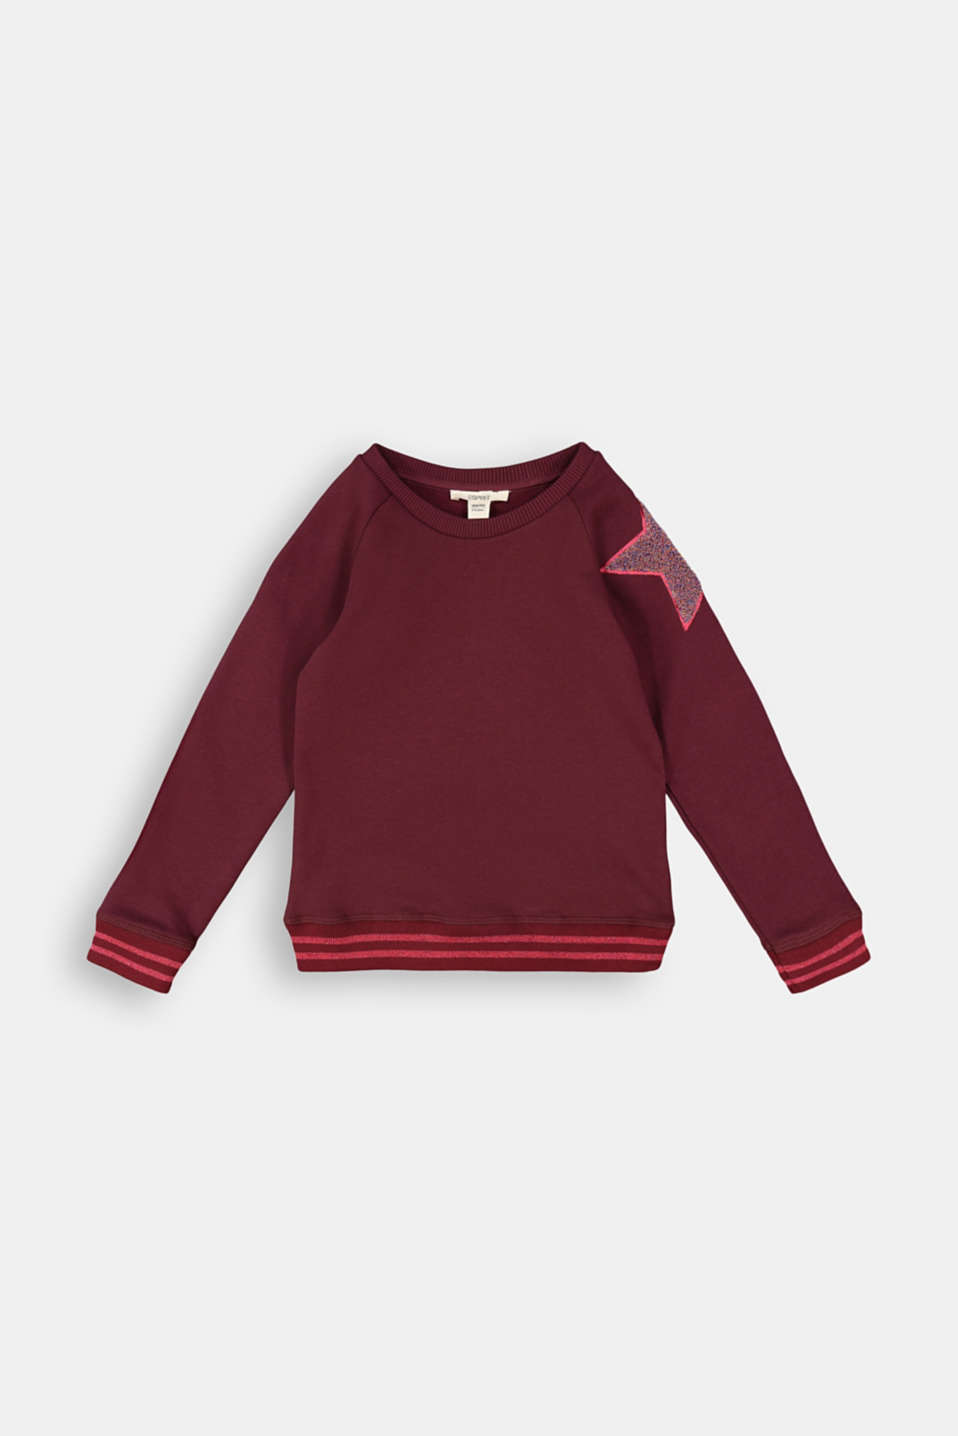 Esprit - Pull-over 100 % coton